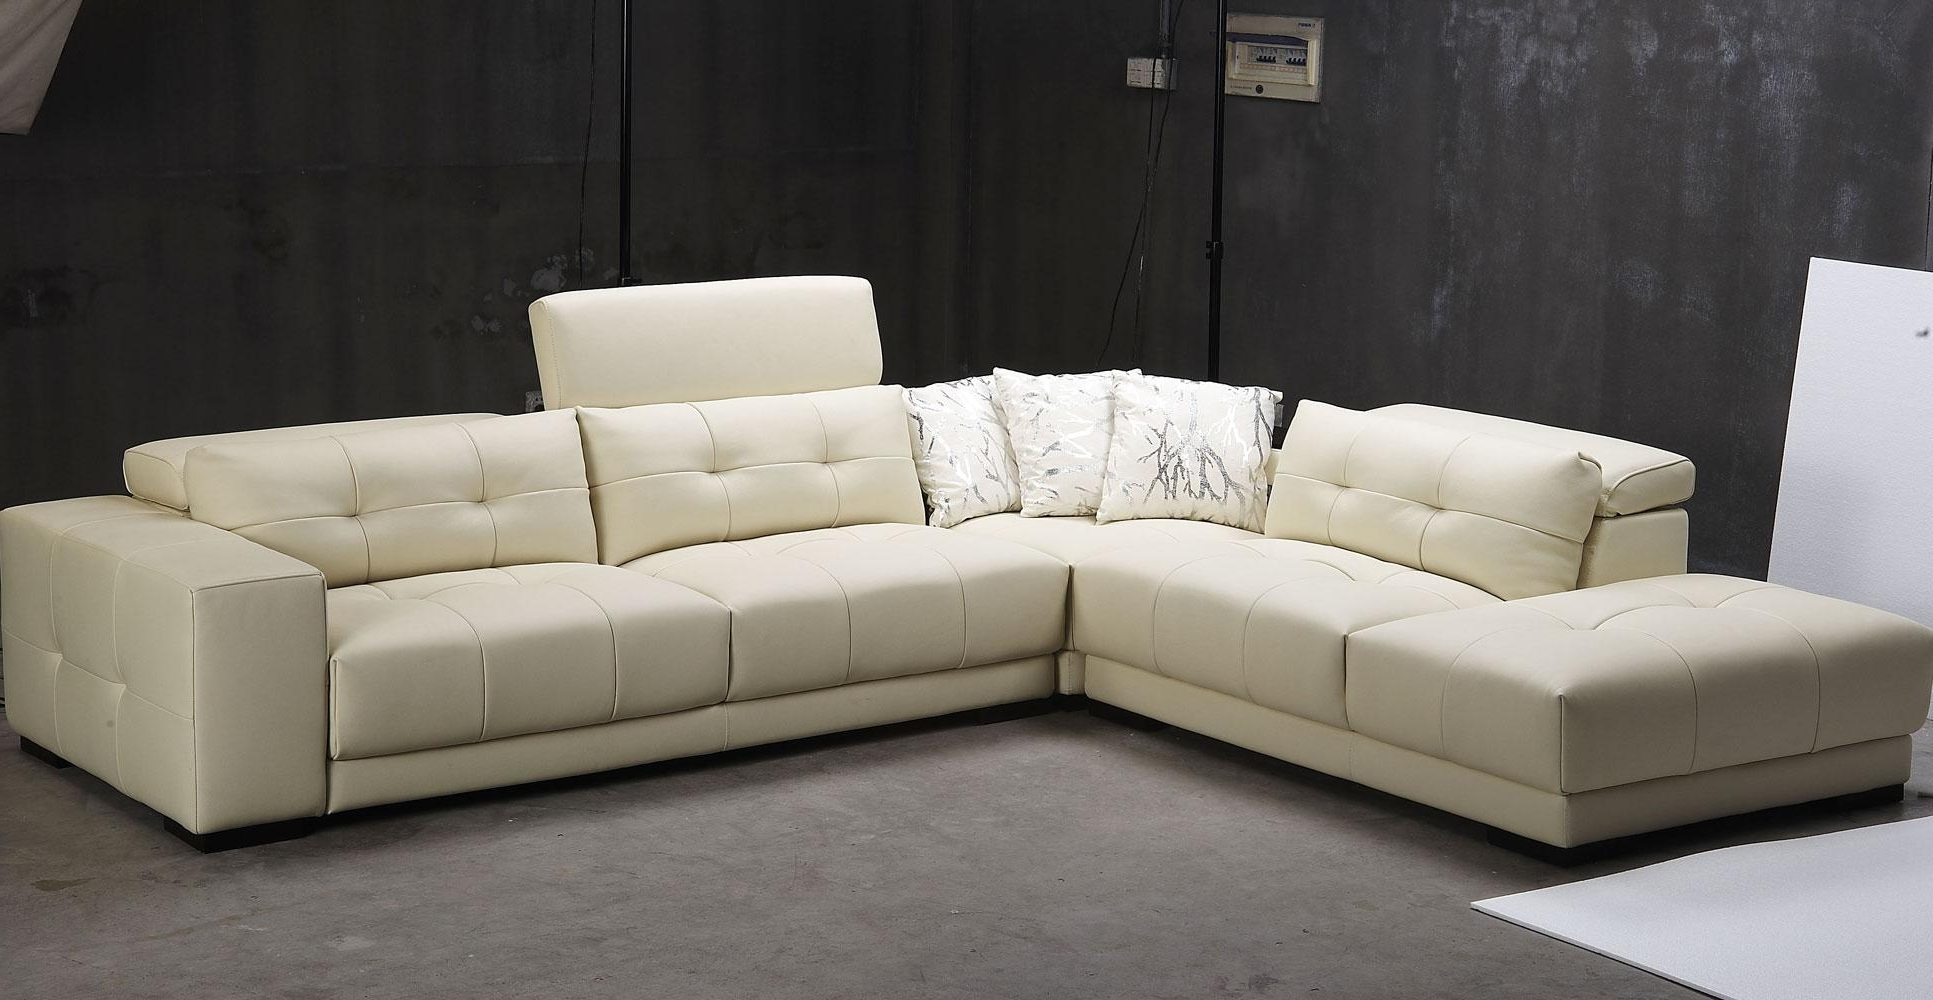 White Leather Sectionals With Chaise Inside Newest Best Modern 3 Piece White Leather Sectional Sleeper Sofa With (View 15 of 15)